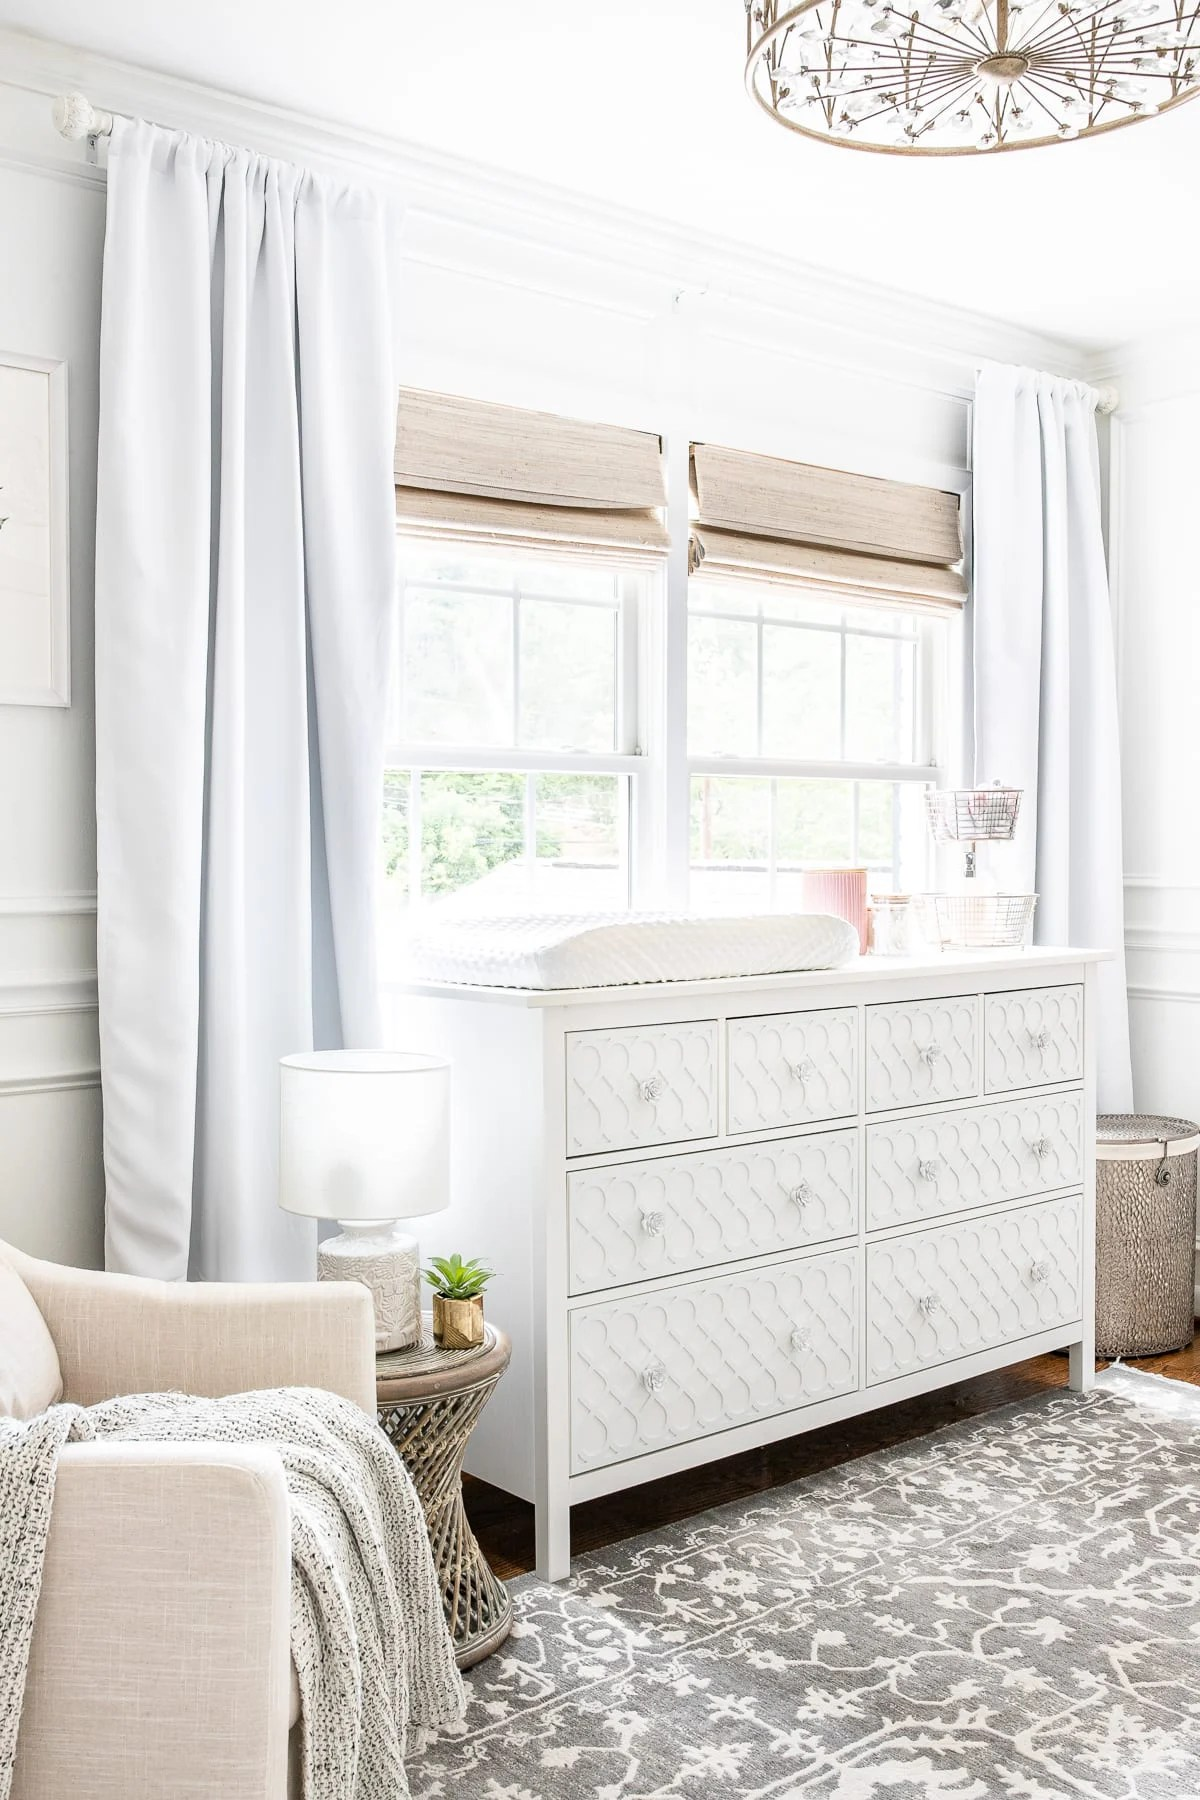 My Favorite Window Treatments How To Hang Curtains Bless Er House,How To Install Smoke Detector In Drop Ceiling